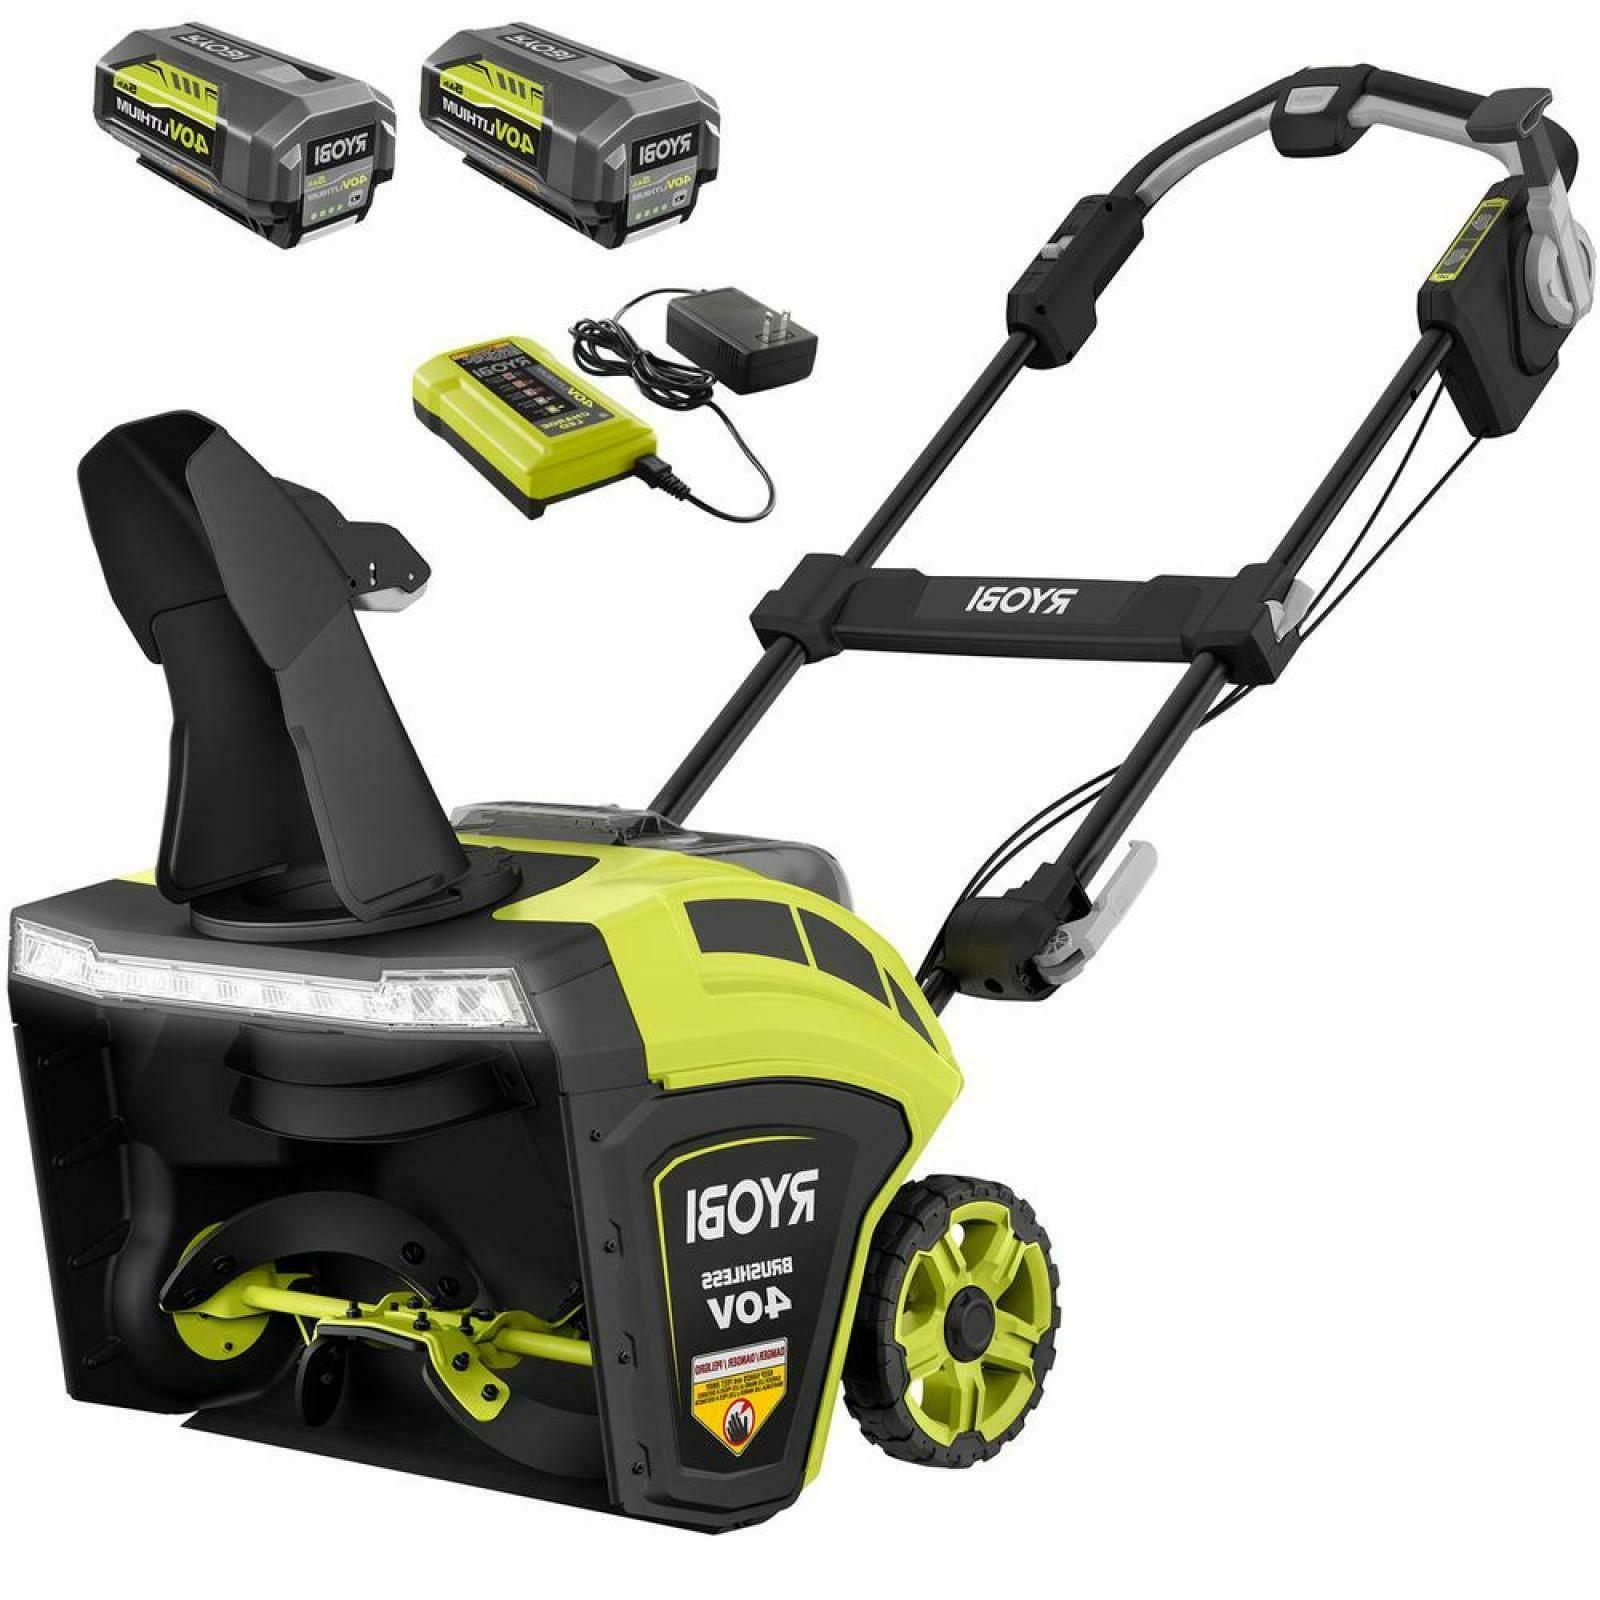 21 40 volt brushless cordless electric snow